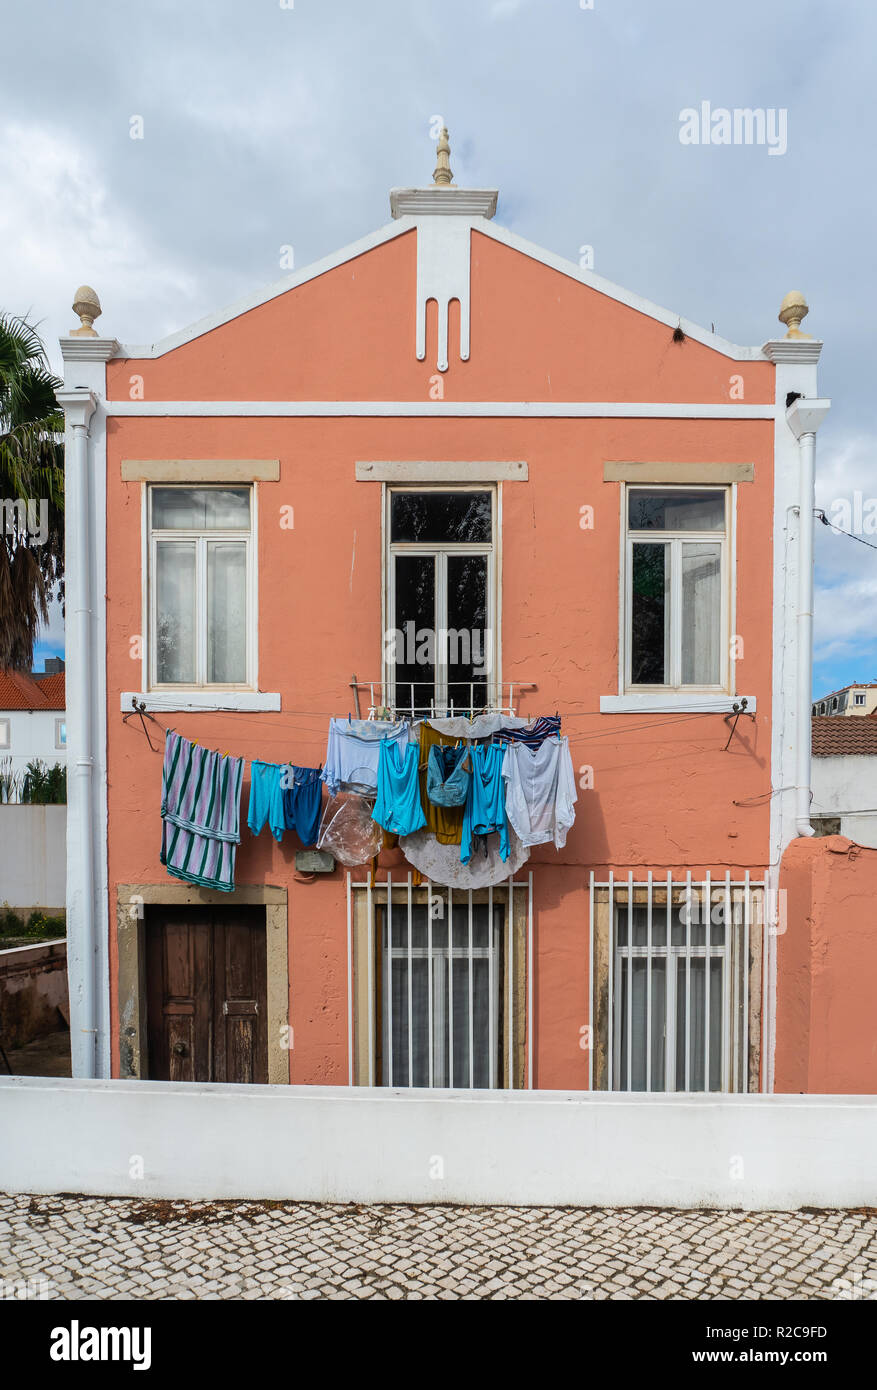 Hang drying clothes in colorful Lisbon Portugal - Stock Image